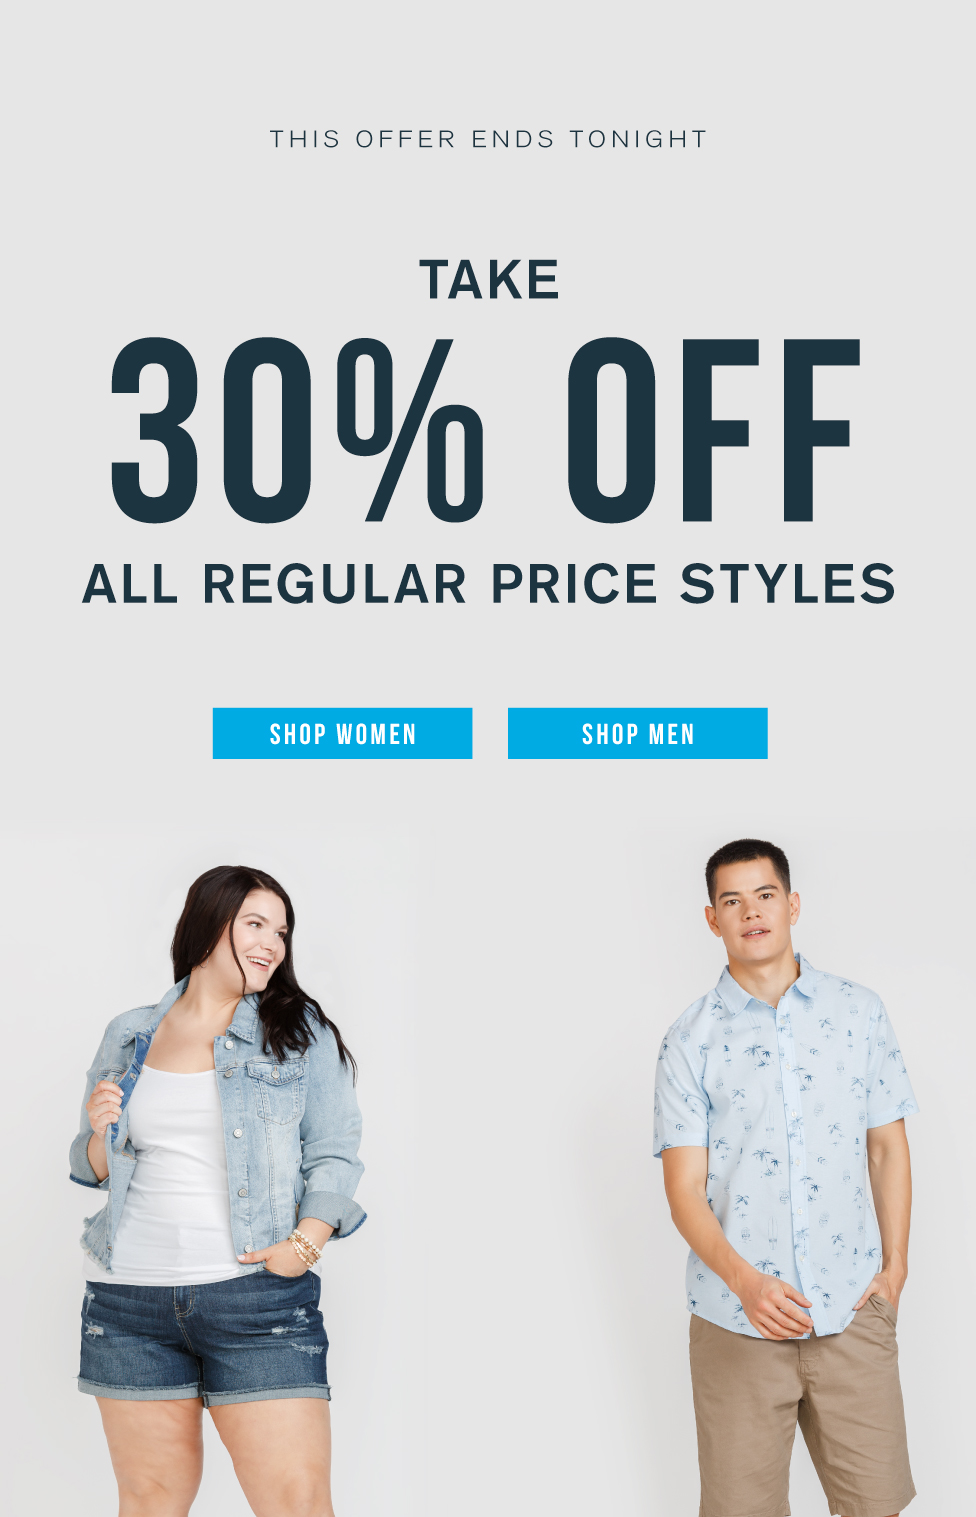 THIS OFFER ENDS TONIGHT. TAKE 30% OFF ALL REGULAR PRICE STYLES. SHOP MEN. SHOP WOMEN.